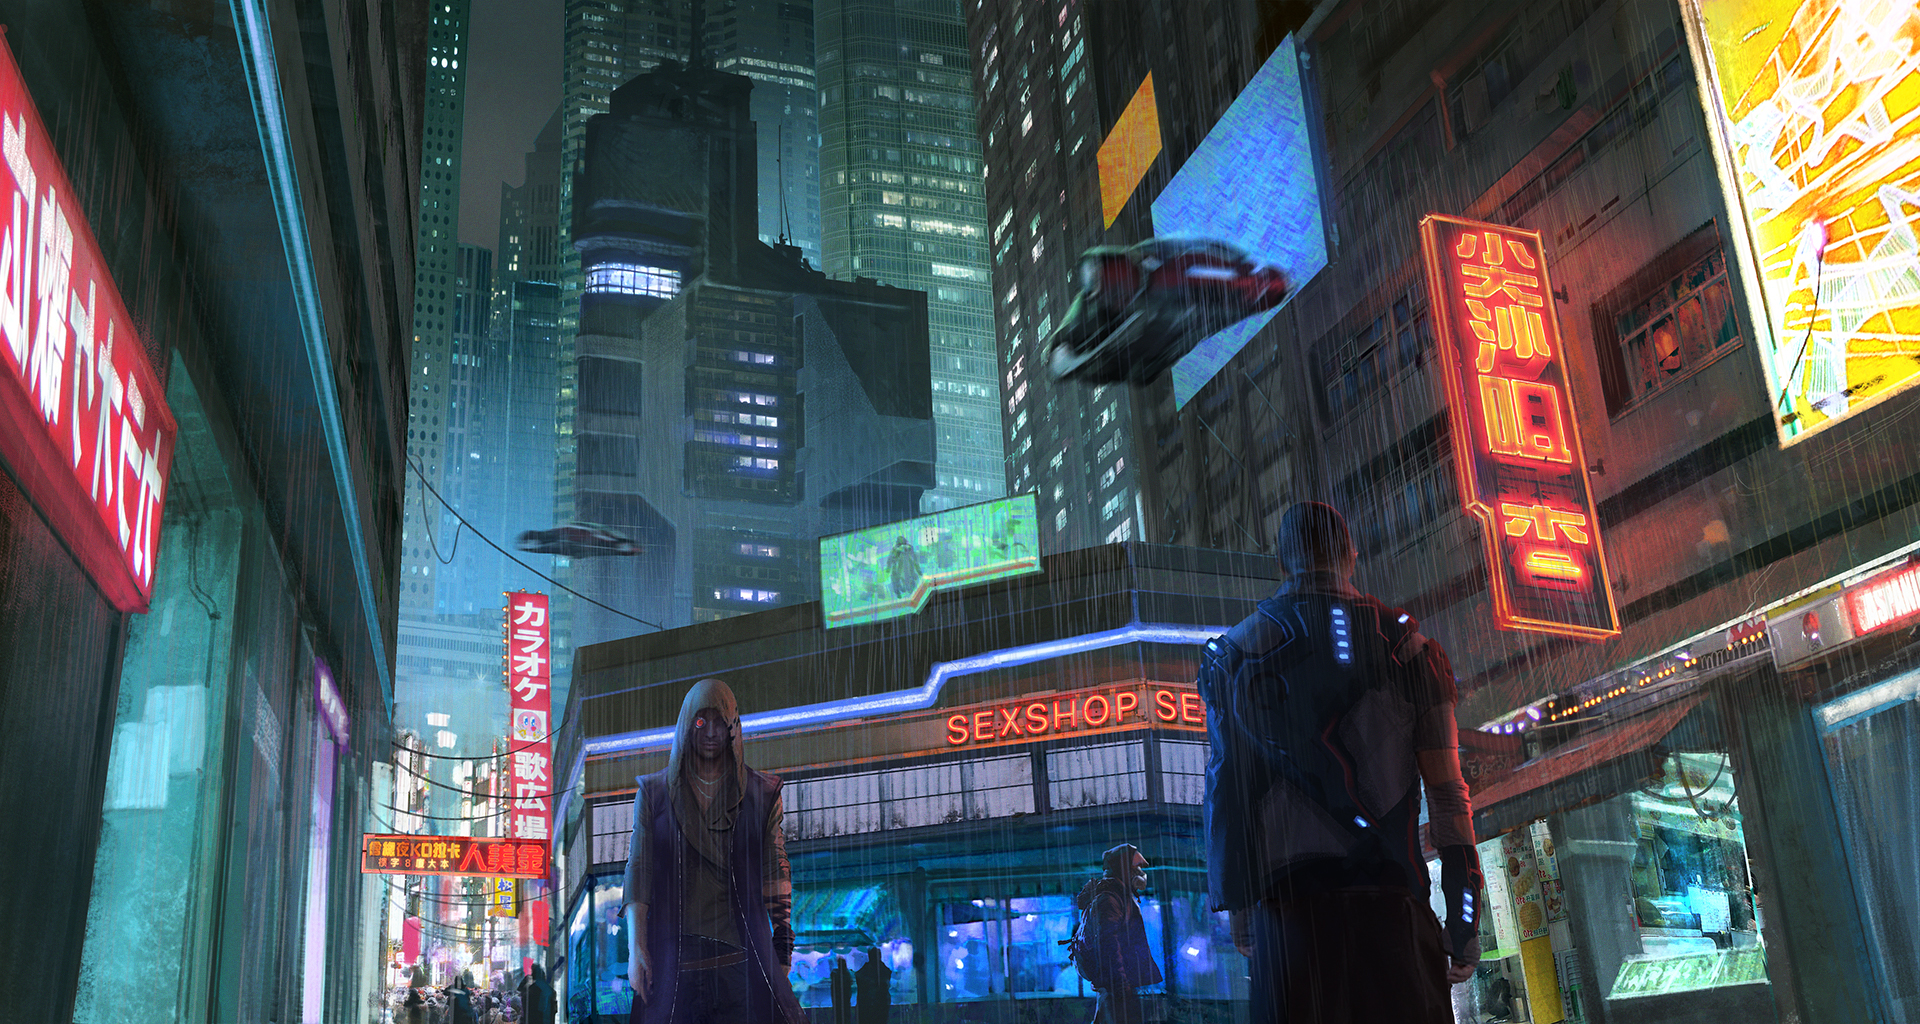 Cyberpunk City Images